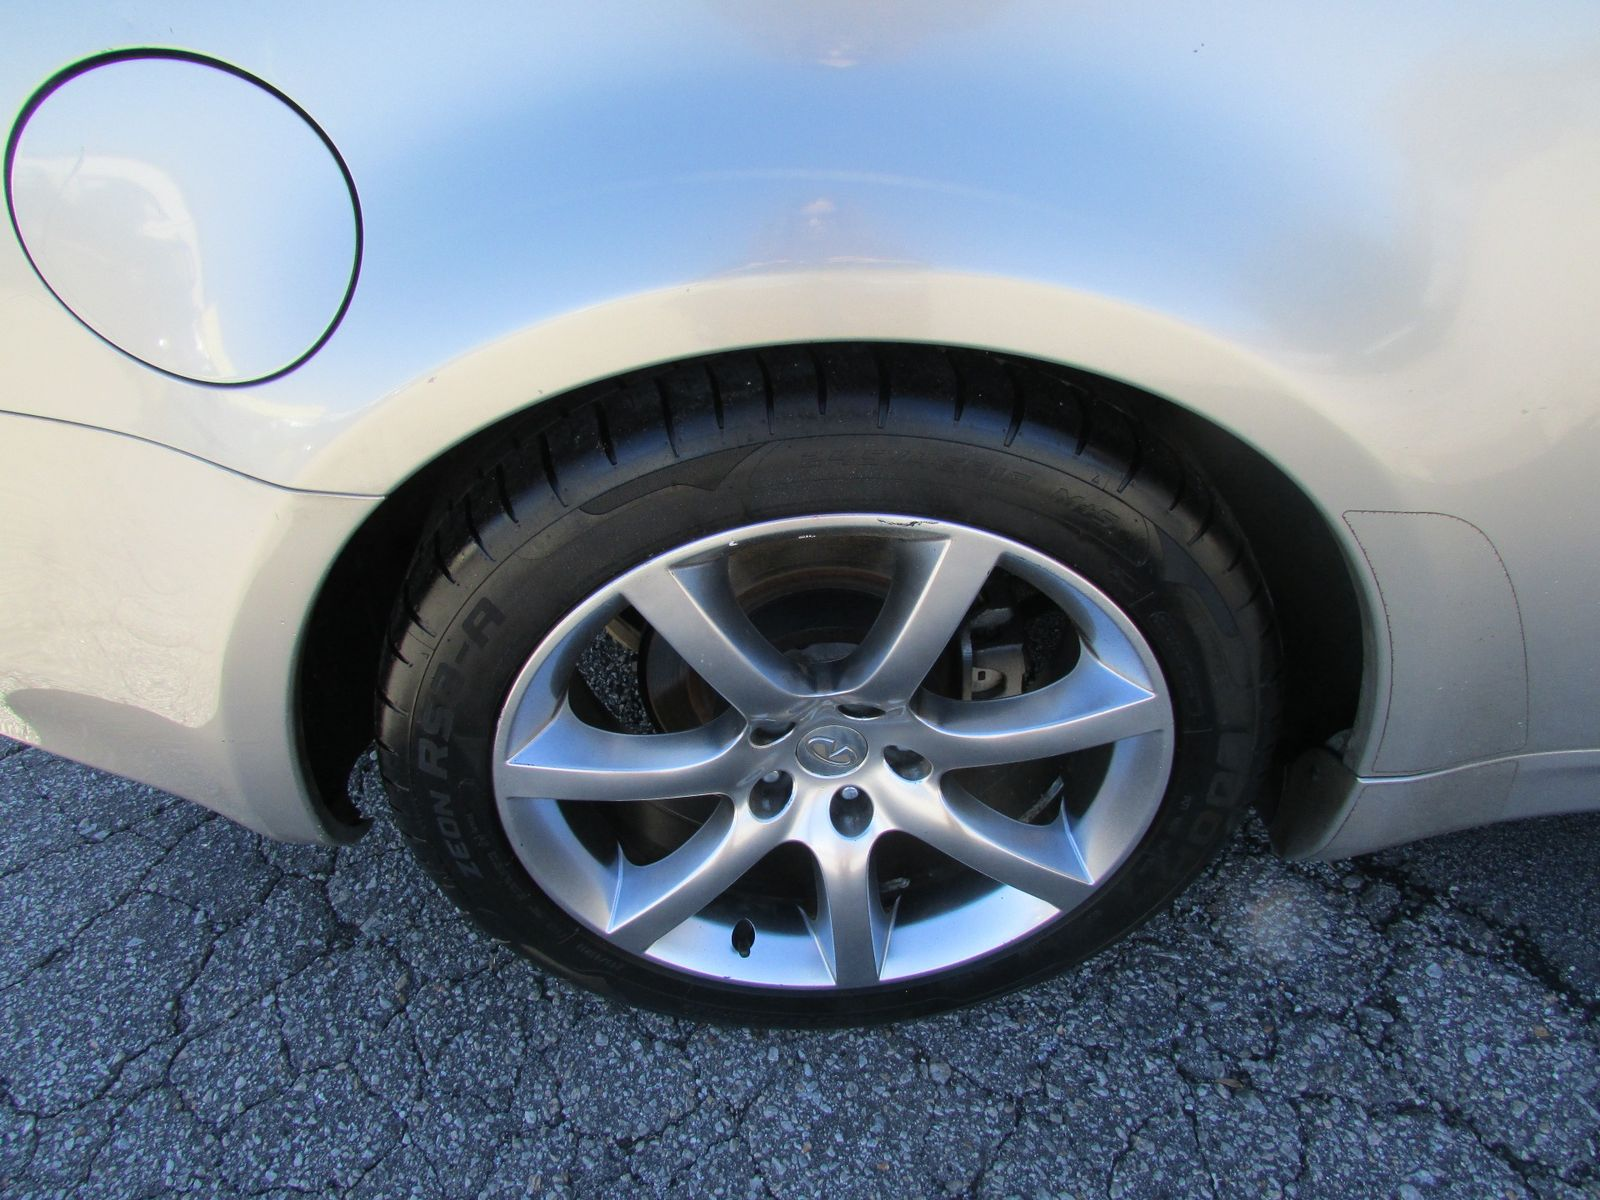 infinity cars tires review infiniti top speed